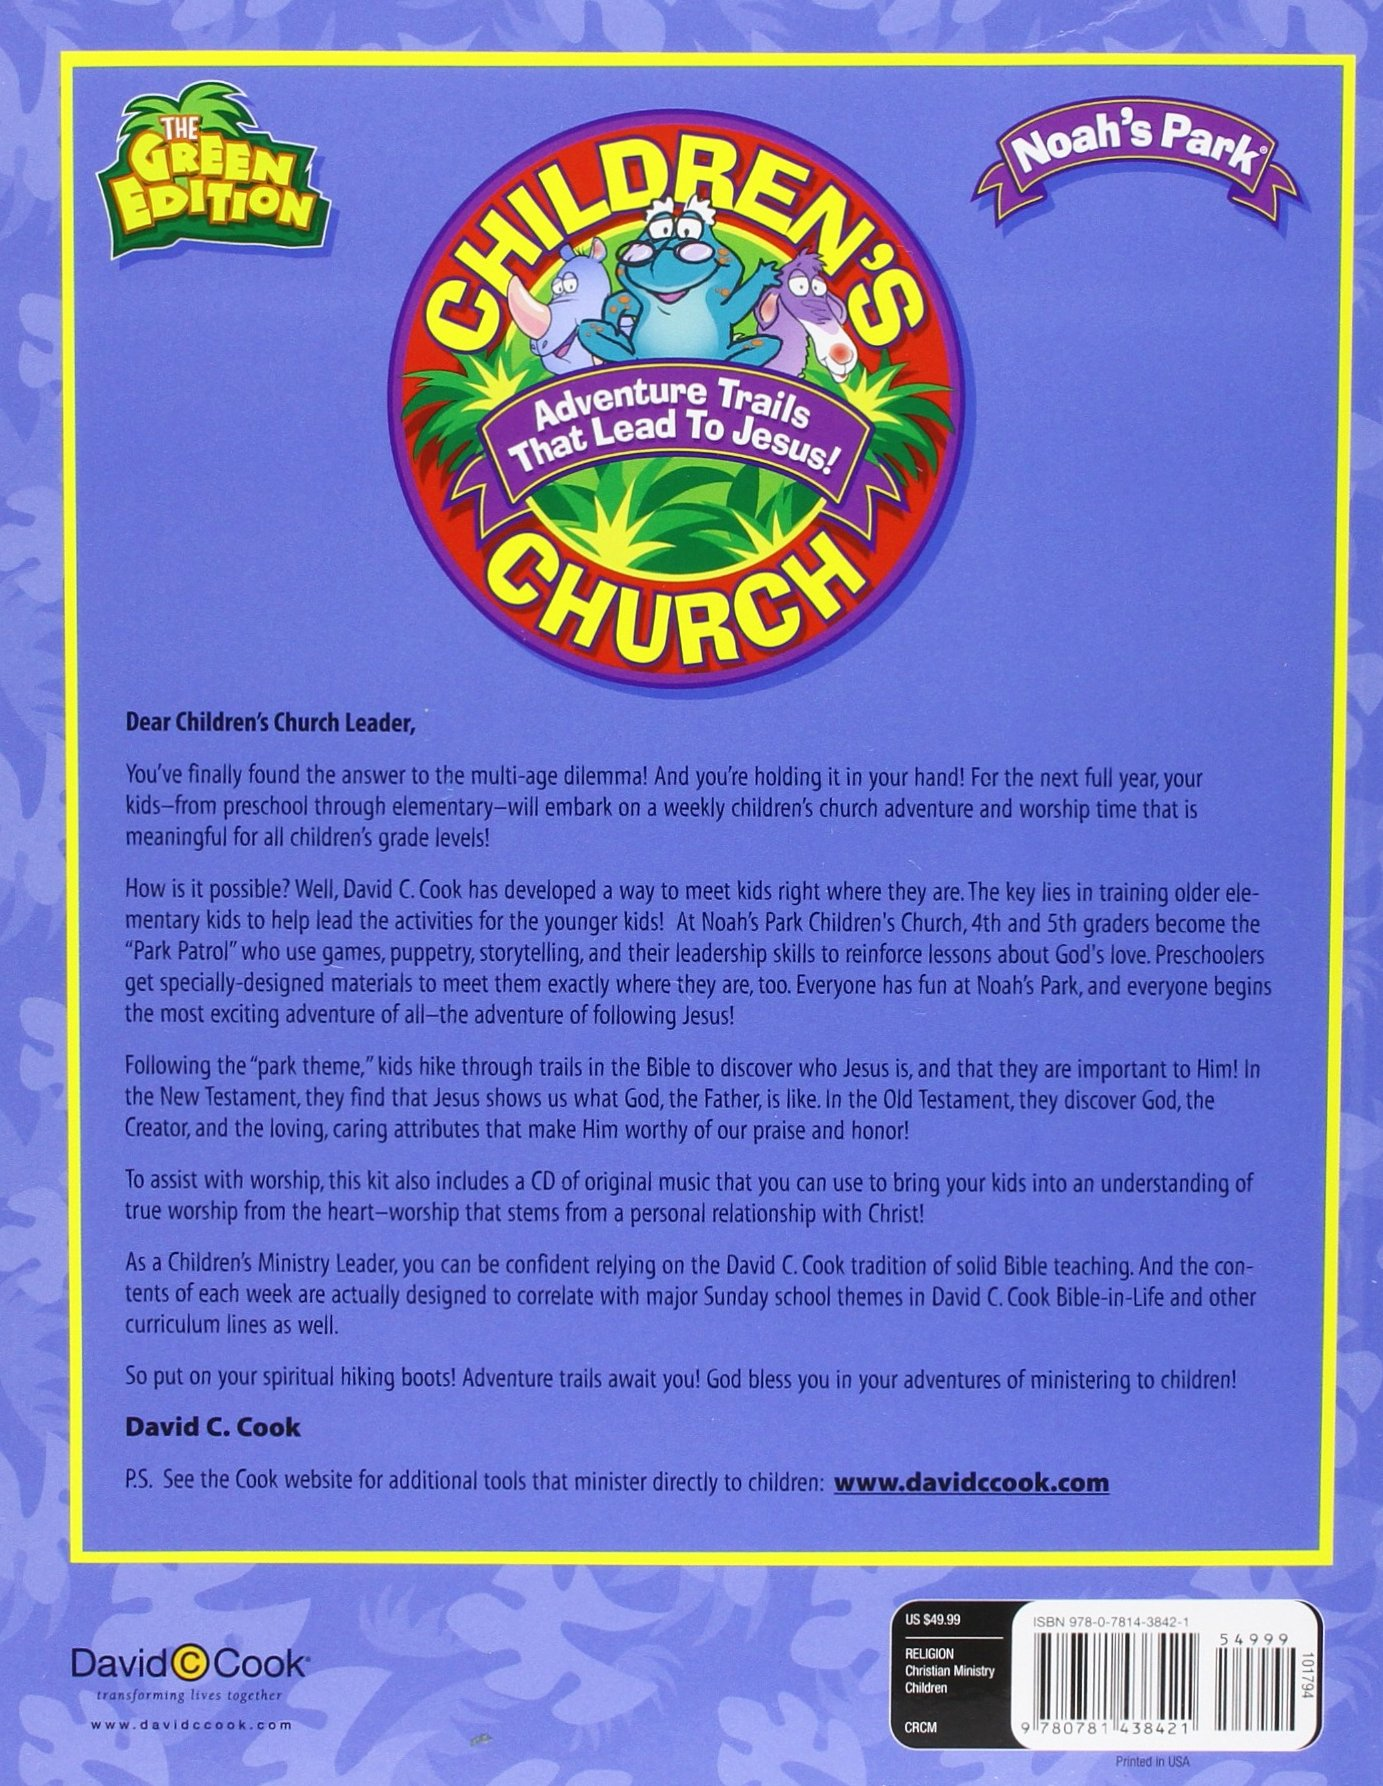 Vbs 2013 daily park guide ebook get ready array noah u0027s park children u0027s church kit green edition adventure trails rh fandeluxe Image collections